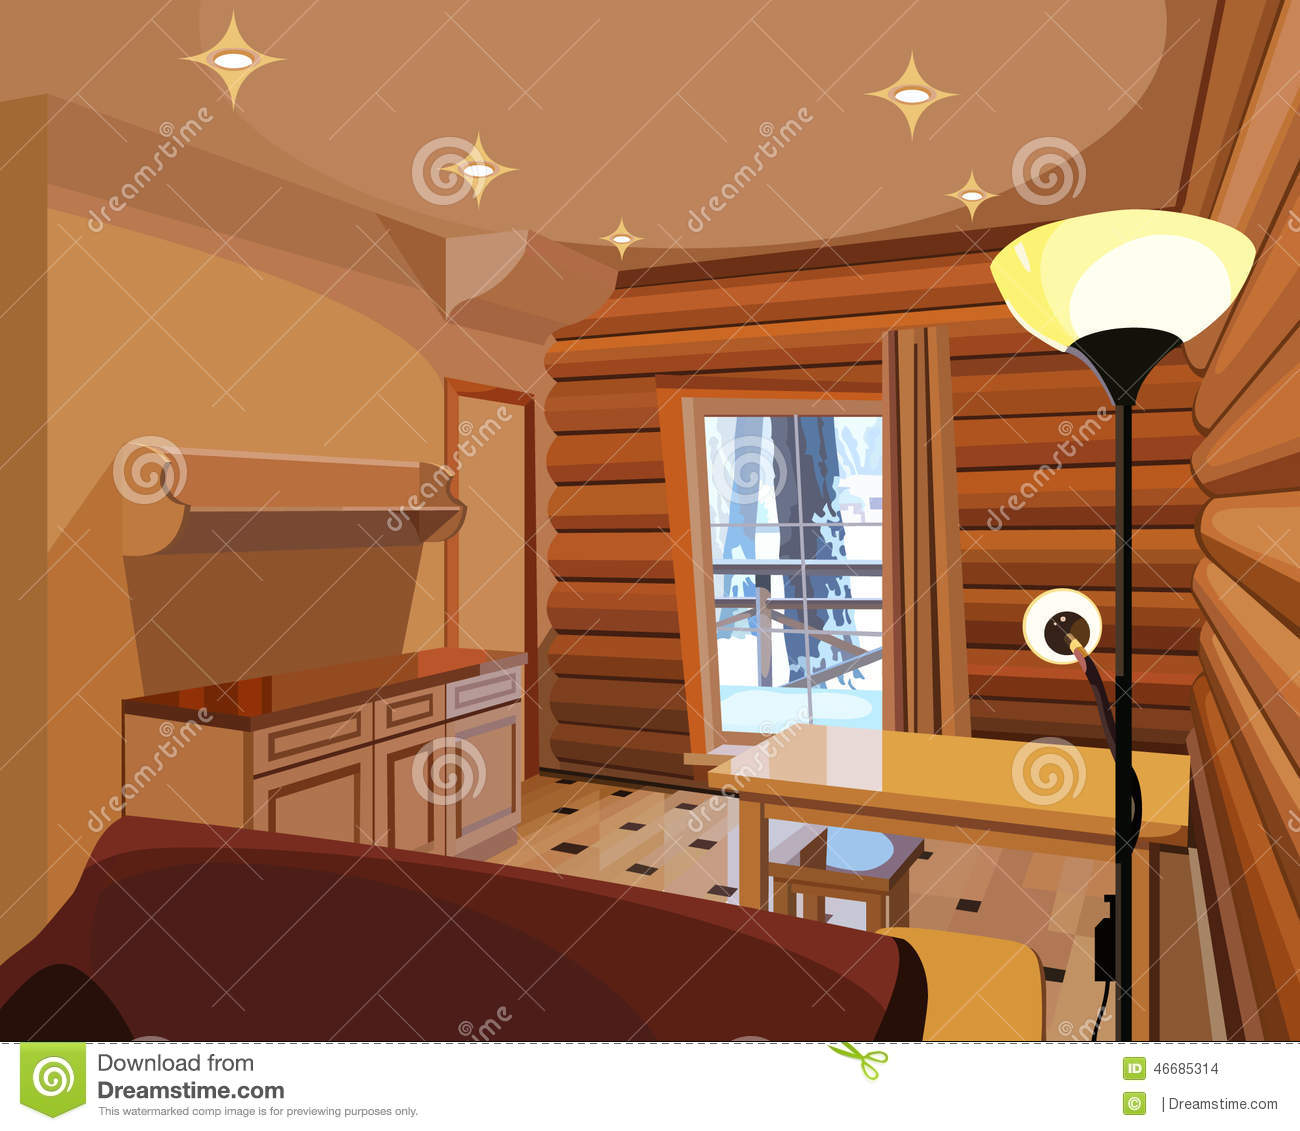 Cartoon Dining Room: Cartoon Interior In A Wooden House Stock Vector